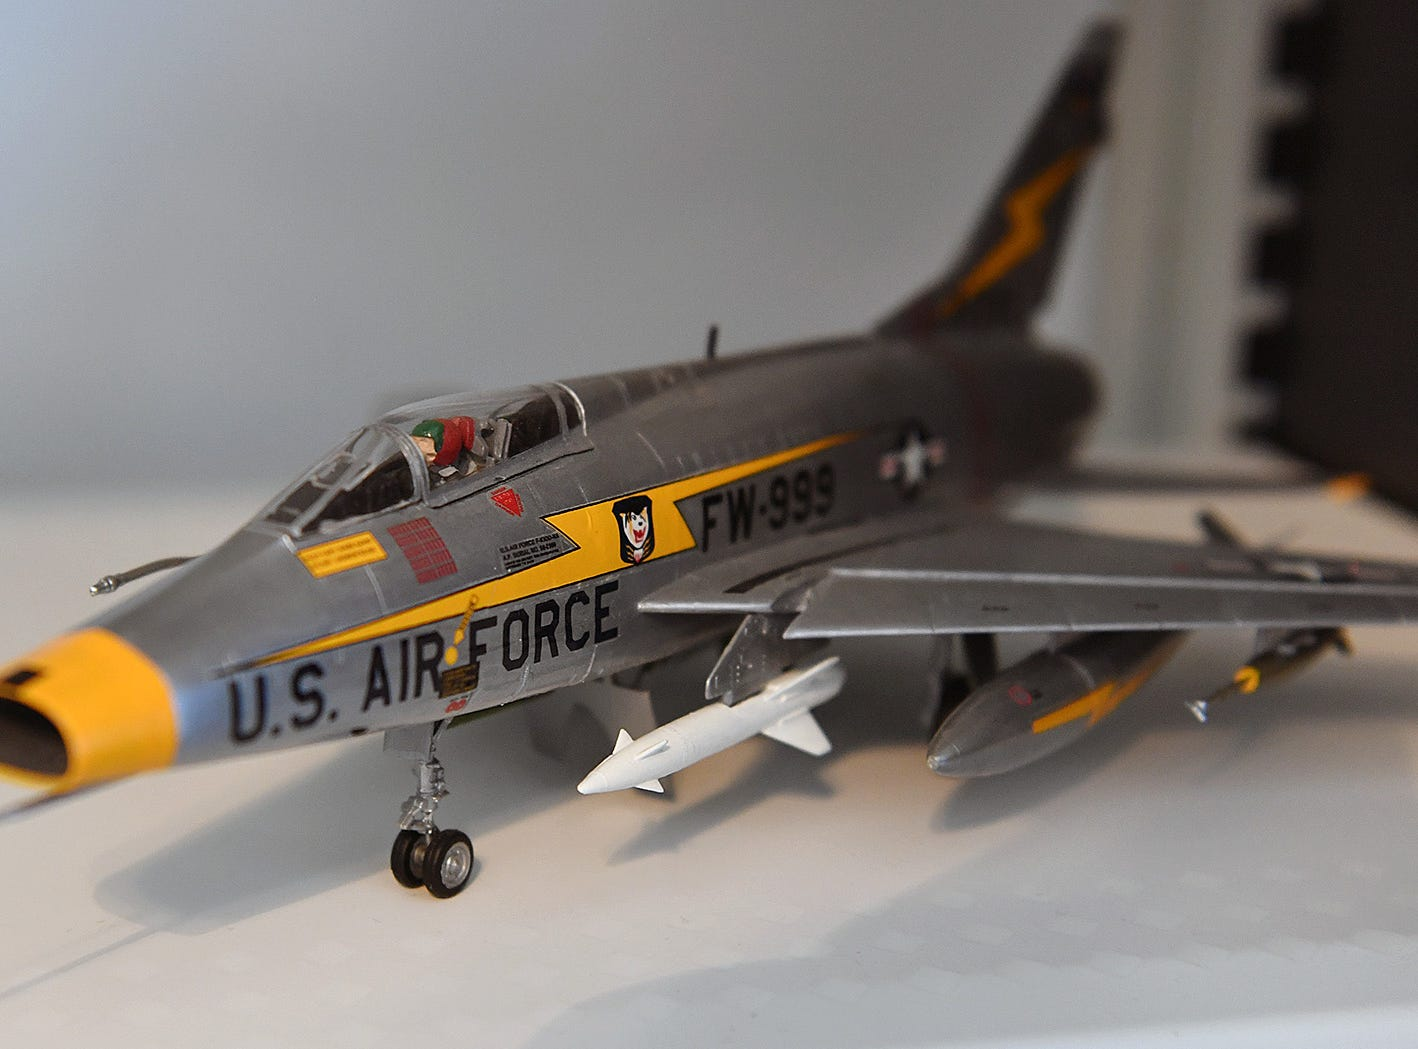 A highly-detailed F-100 Super Sabre fighter jet model built by retired Air Force veteran Jack Riddle. The F-100 was the first supersonic aircraft in the U.S. Air Force.